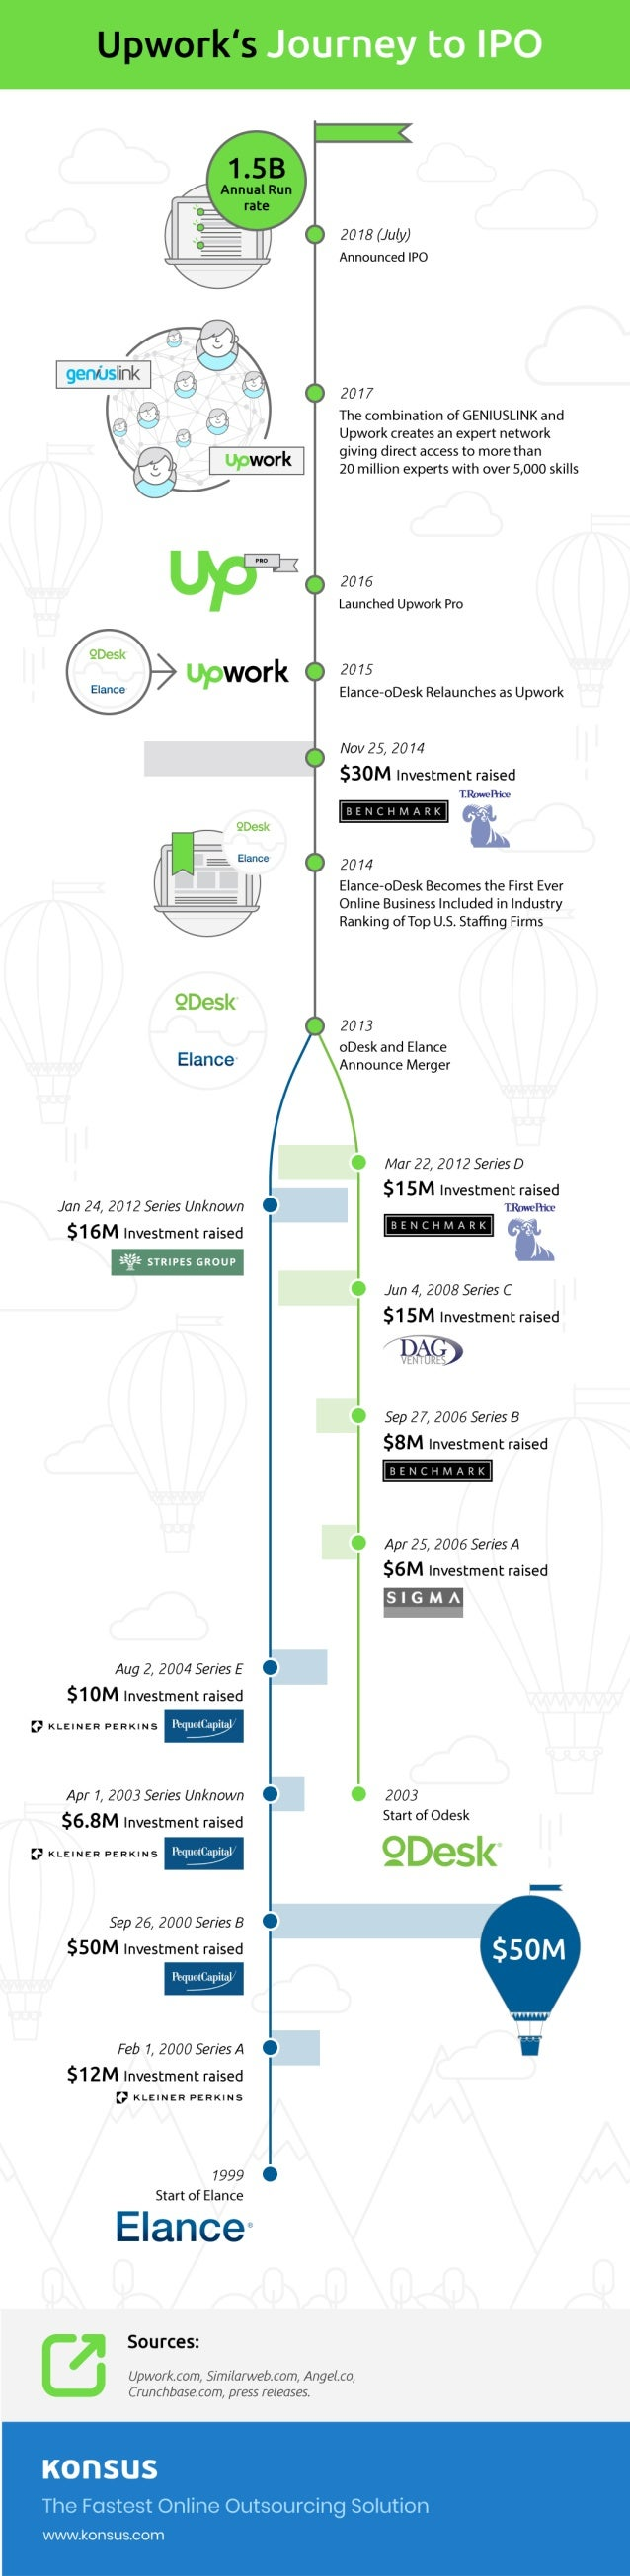 Upwork's Journey to IPO